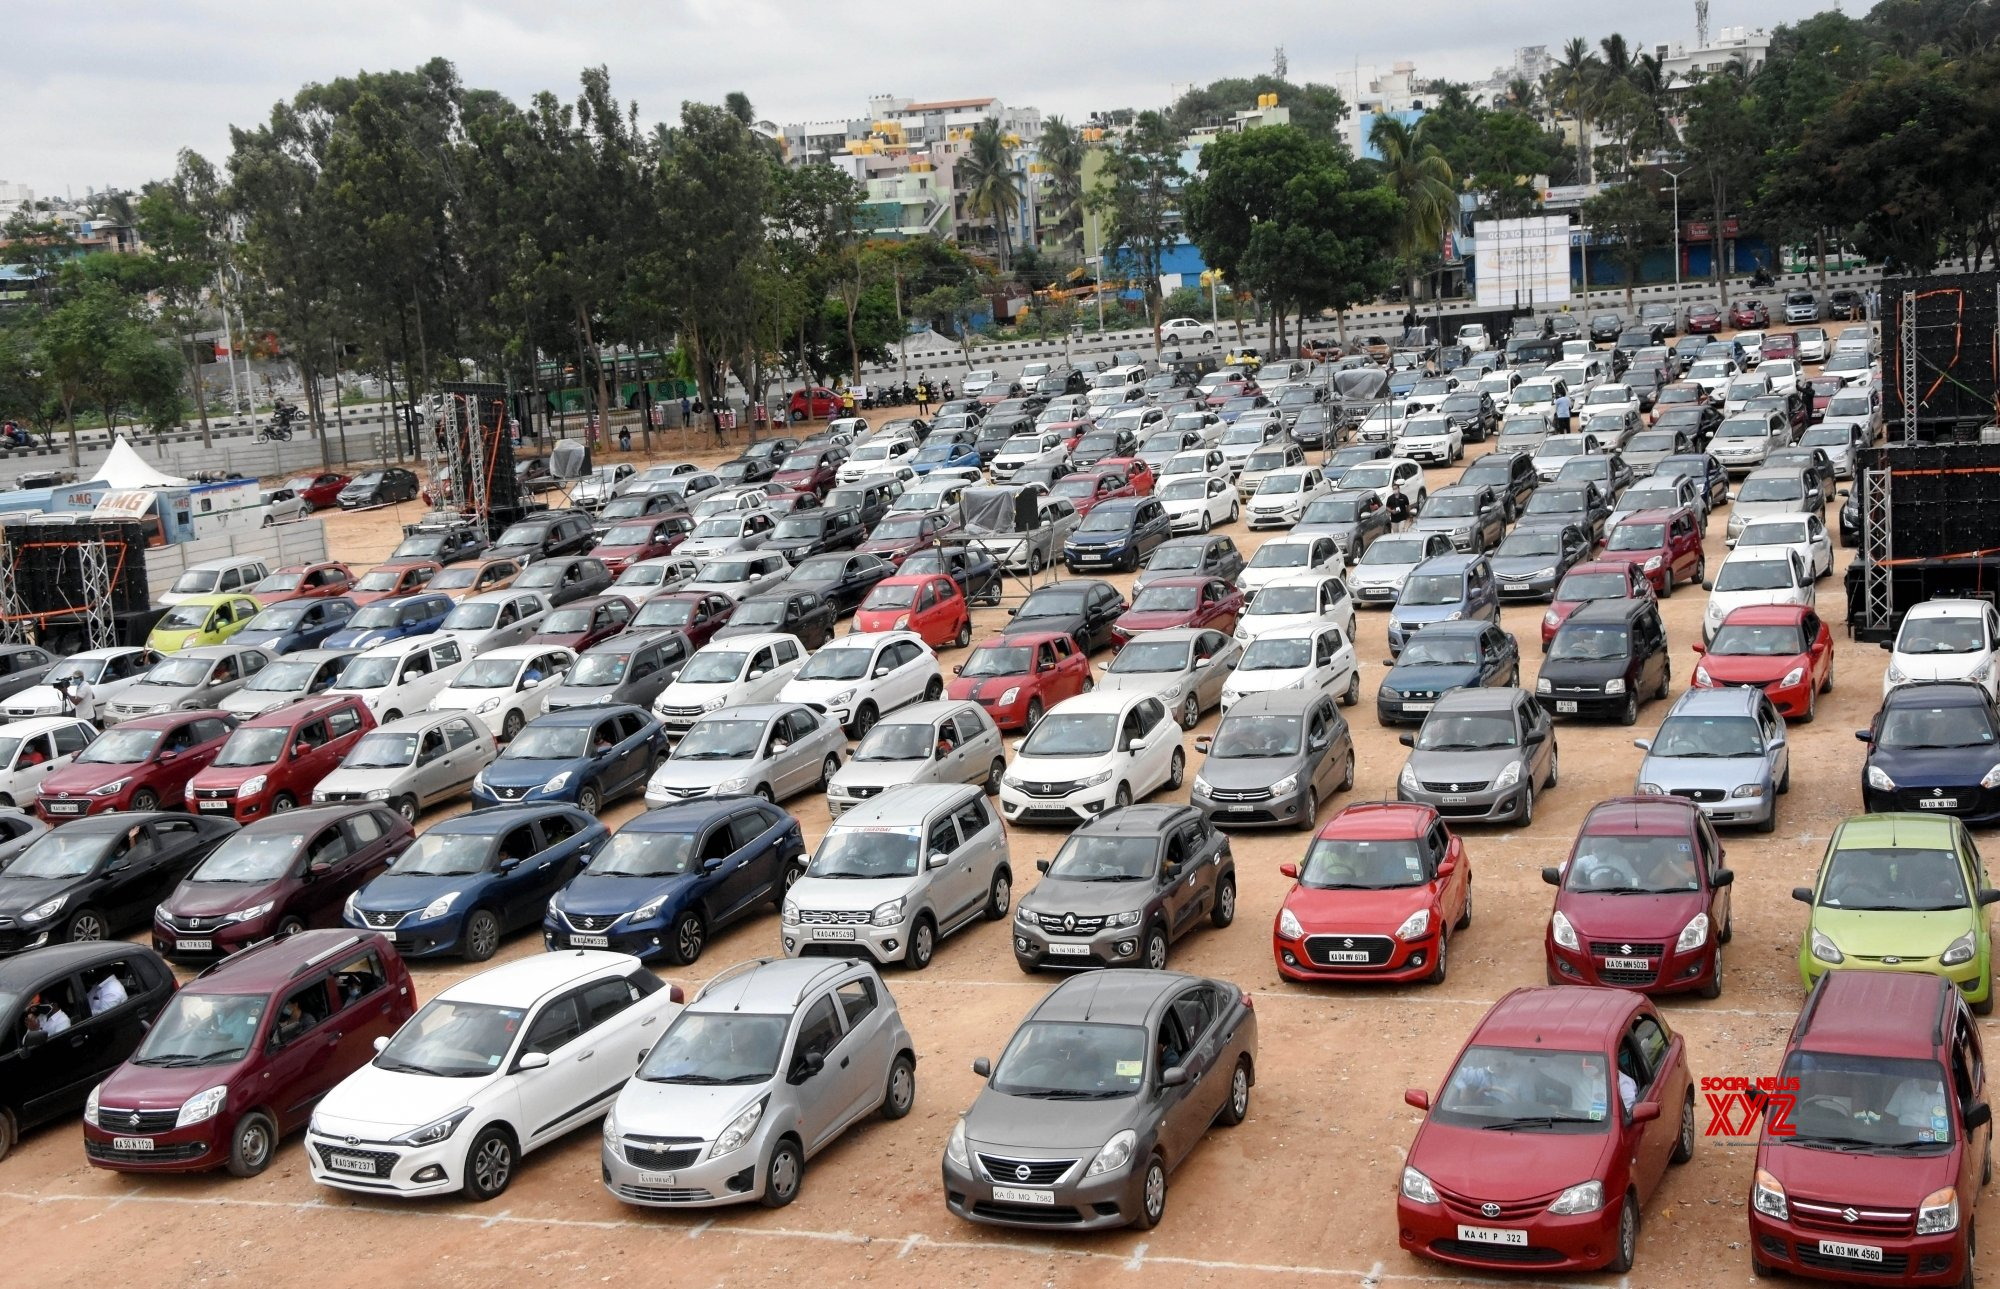 YoY vehicle registrations plunged by over 28% in March: FADA